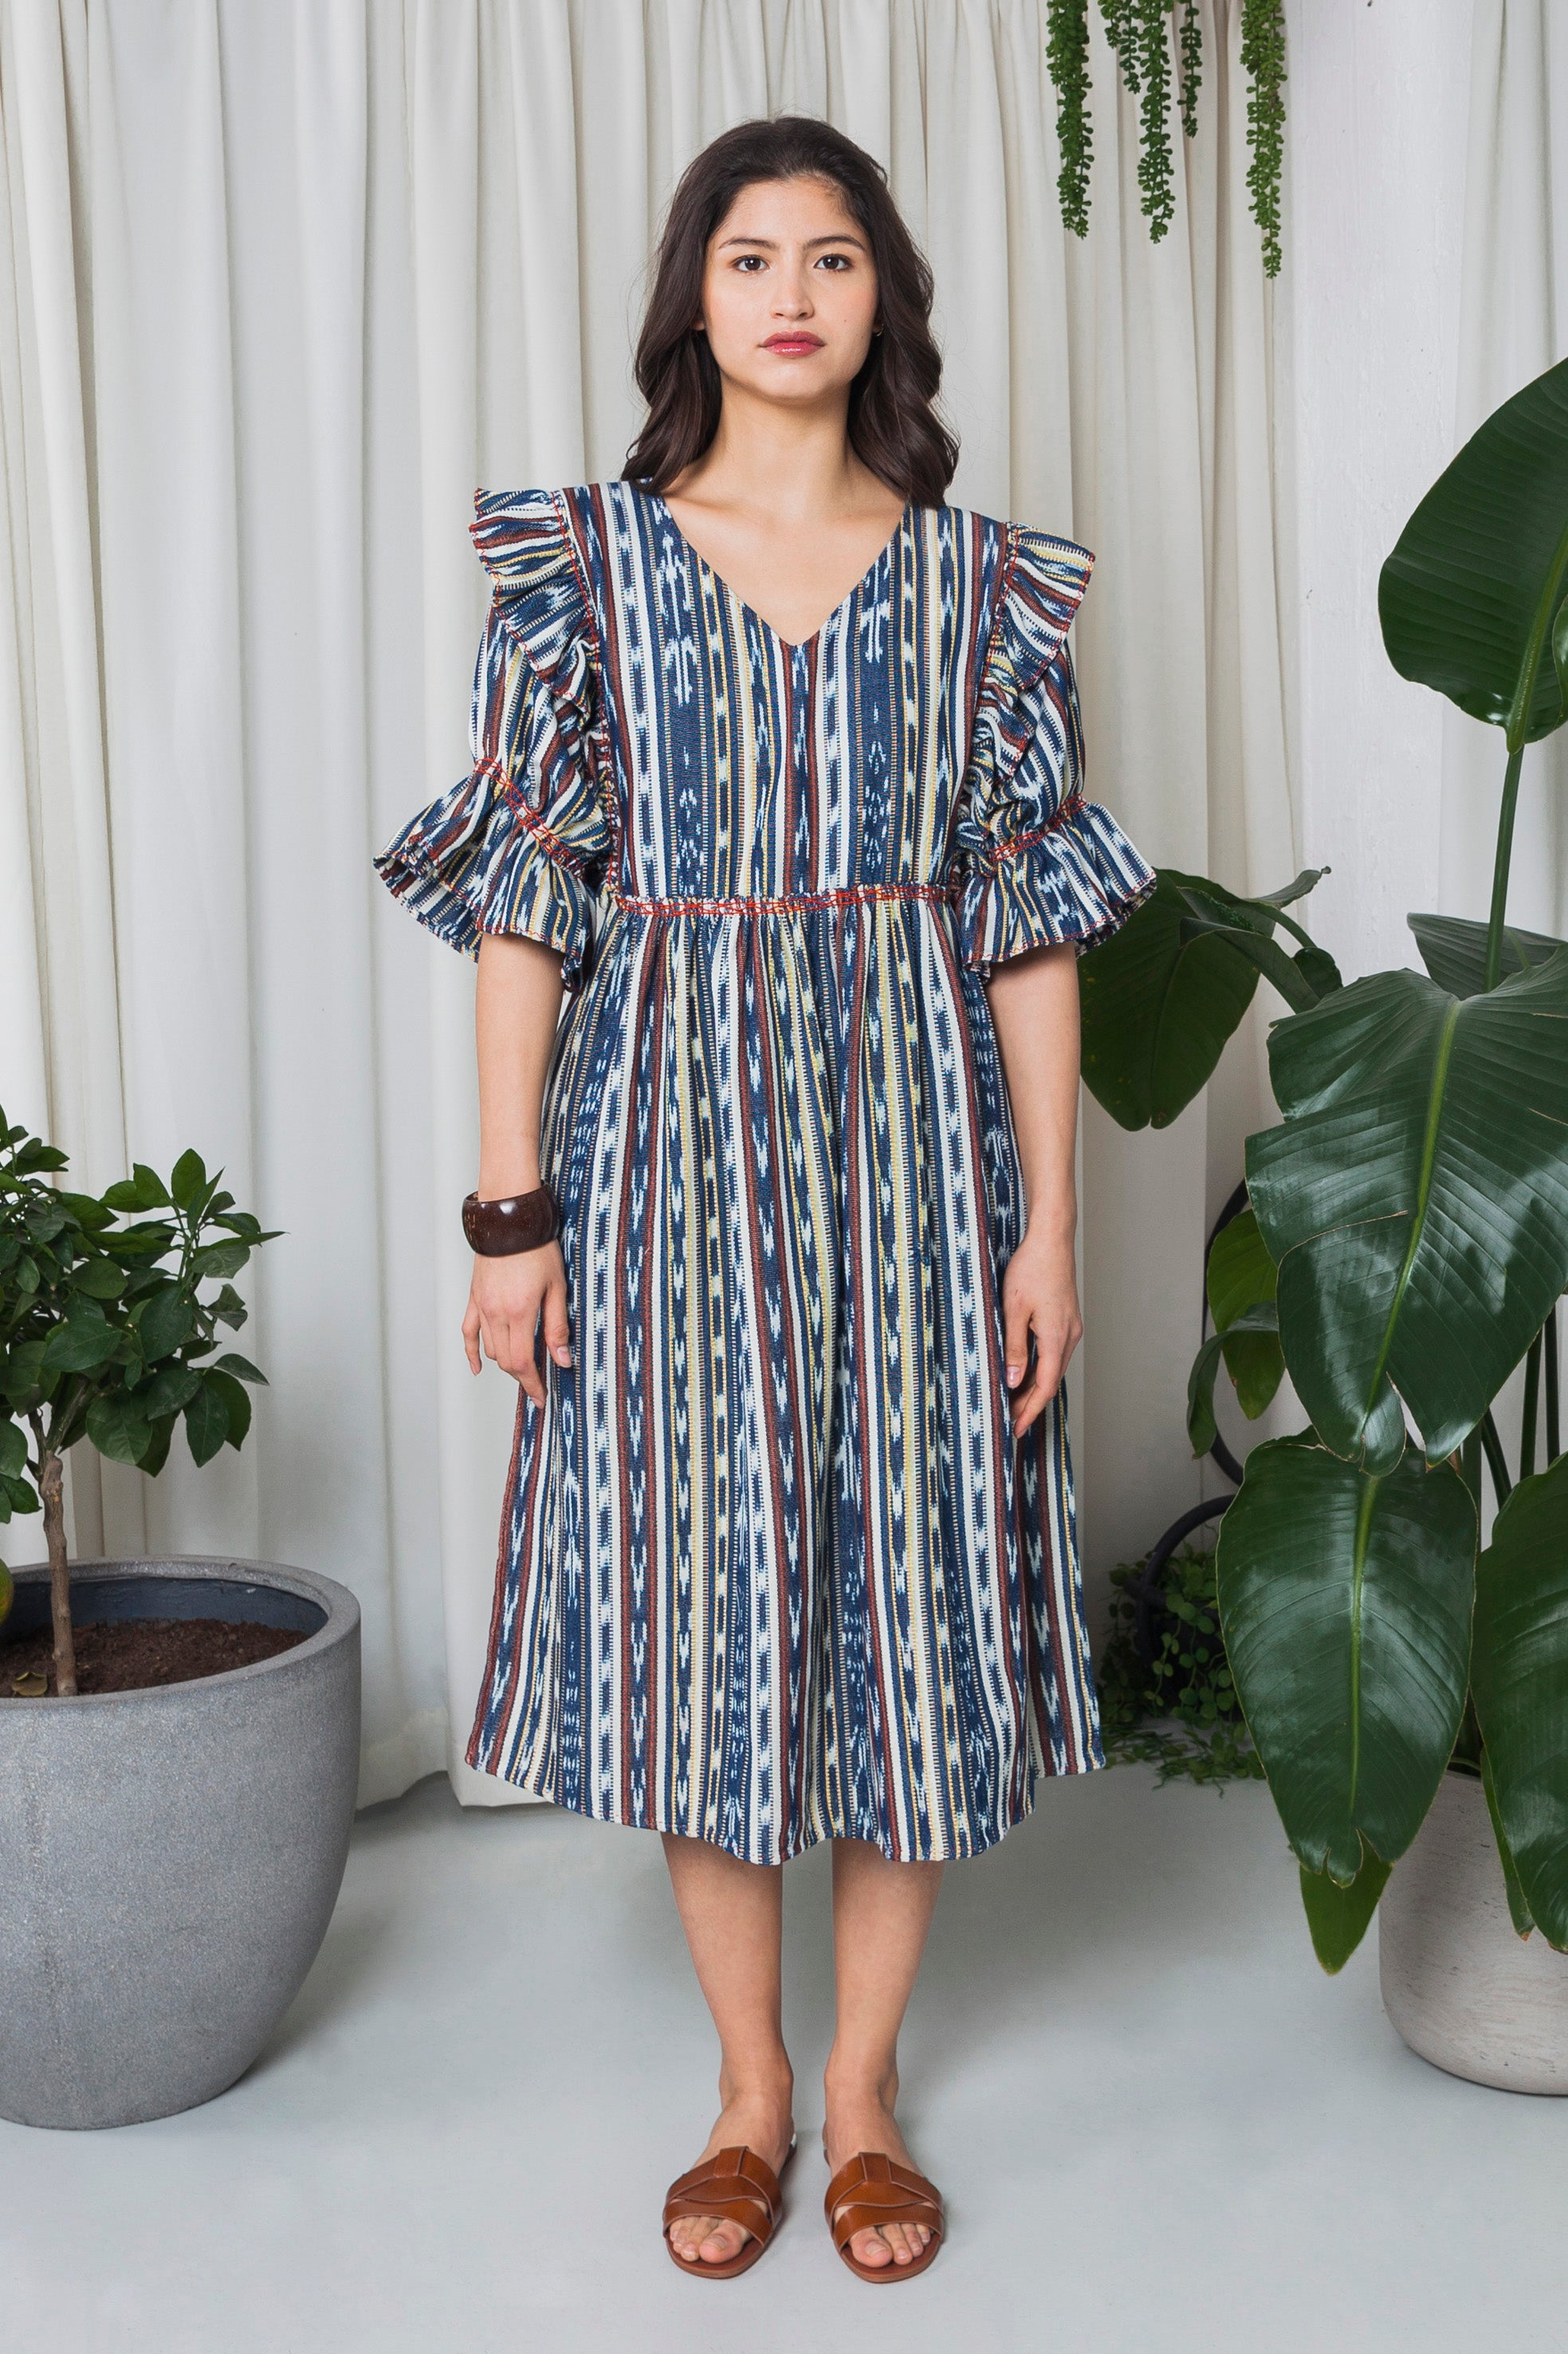 THE CURANDERA DRESS